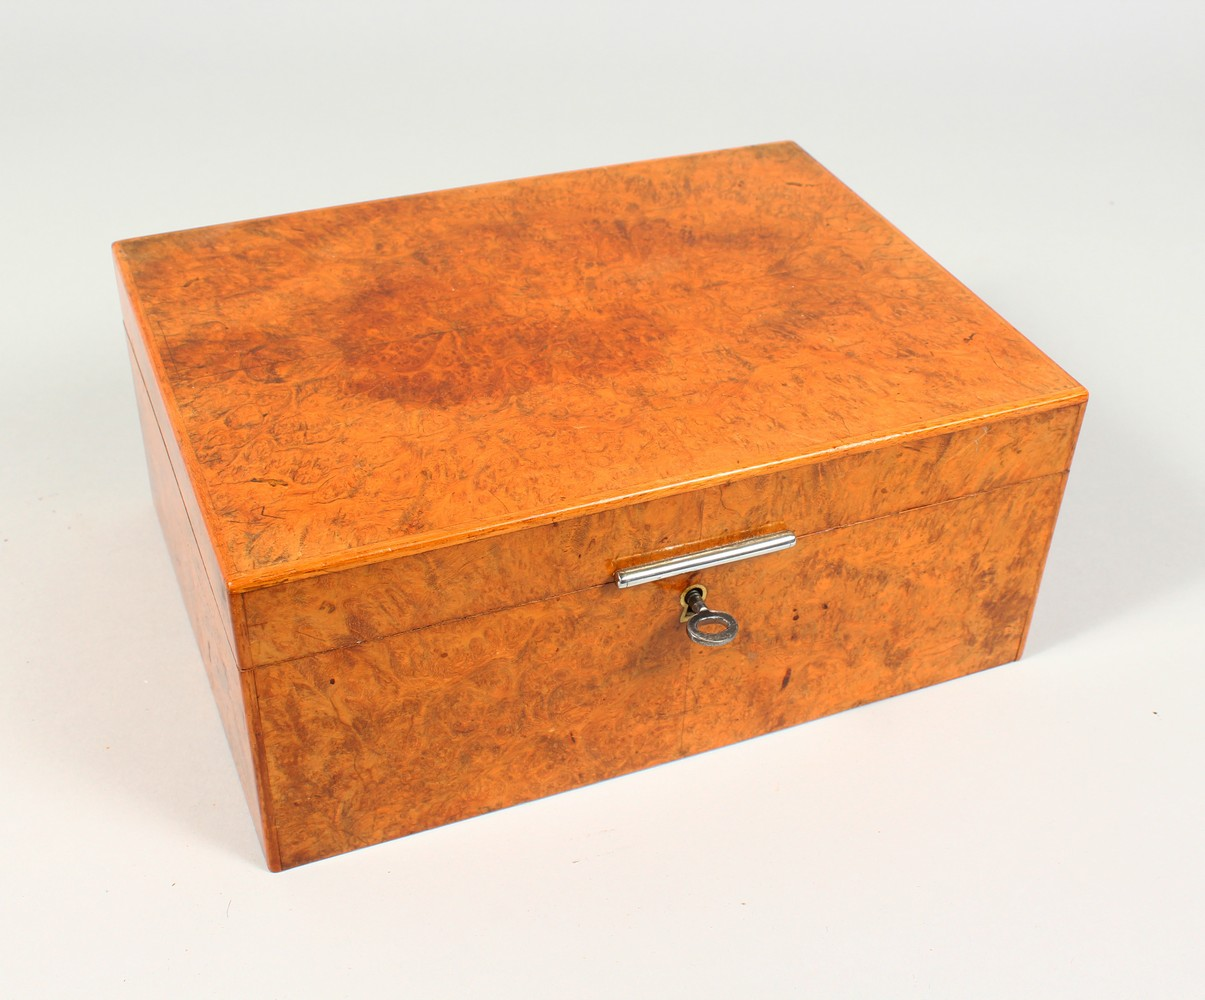 ALFRED DUNHILL, A GOOD BURR WOOD HUMIDOR. 10.25ins wide.